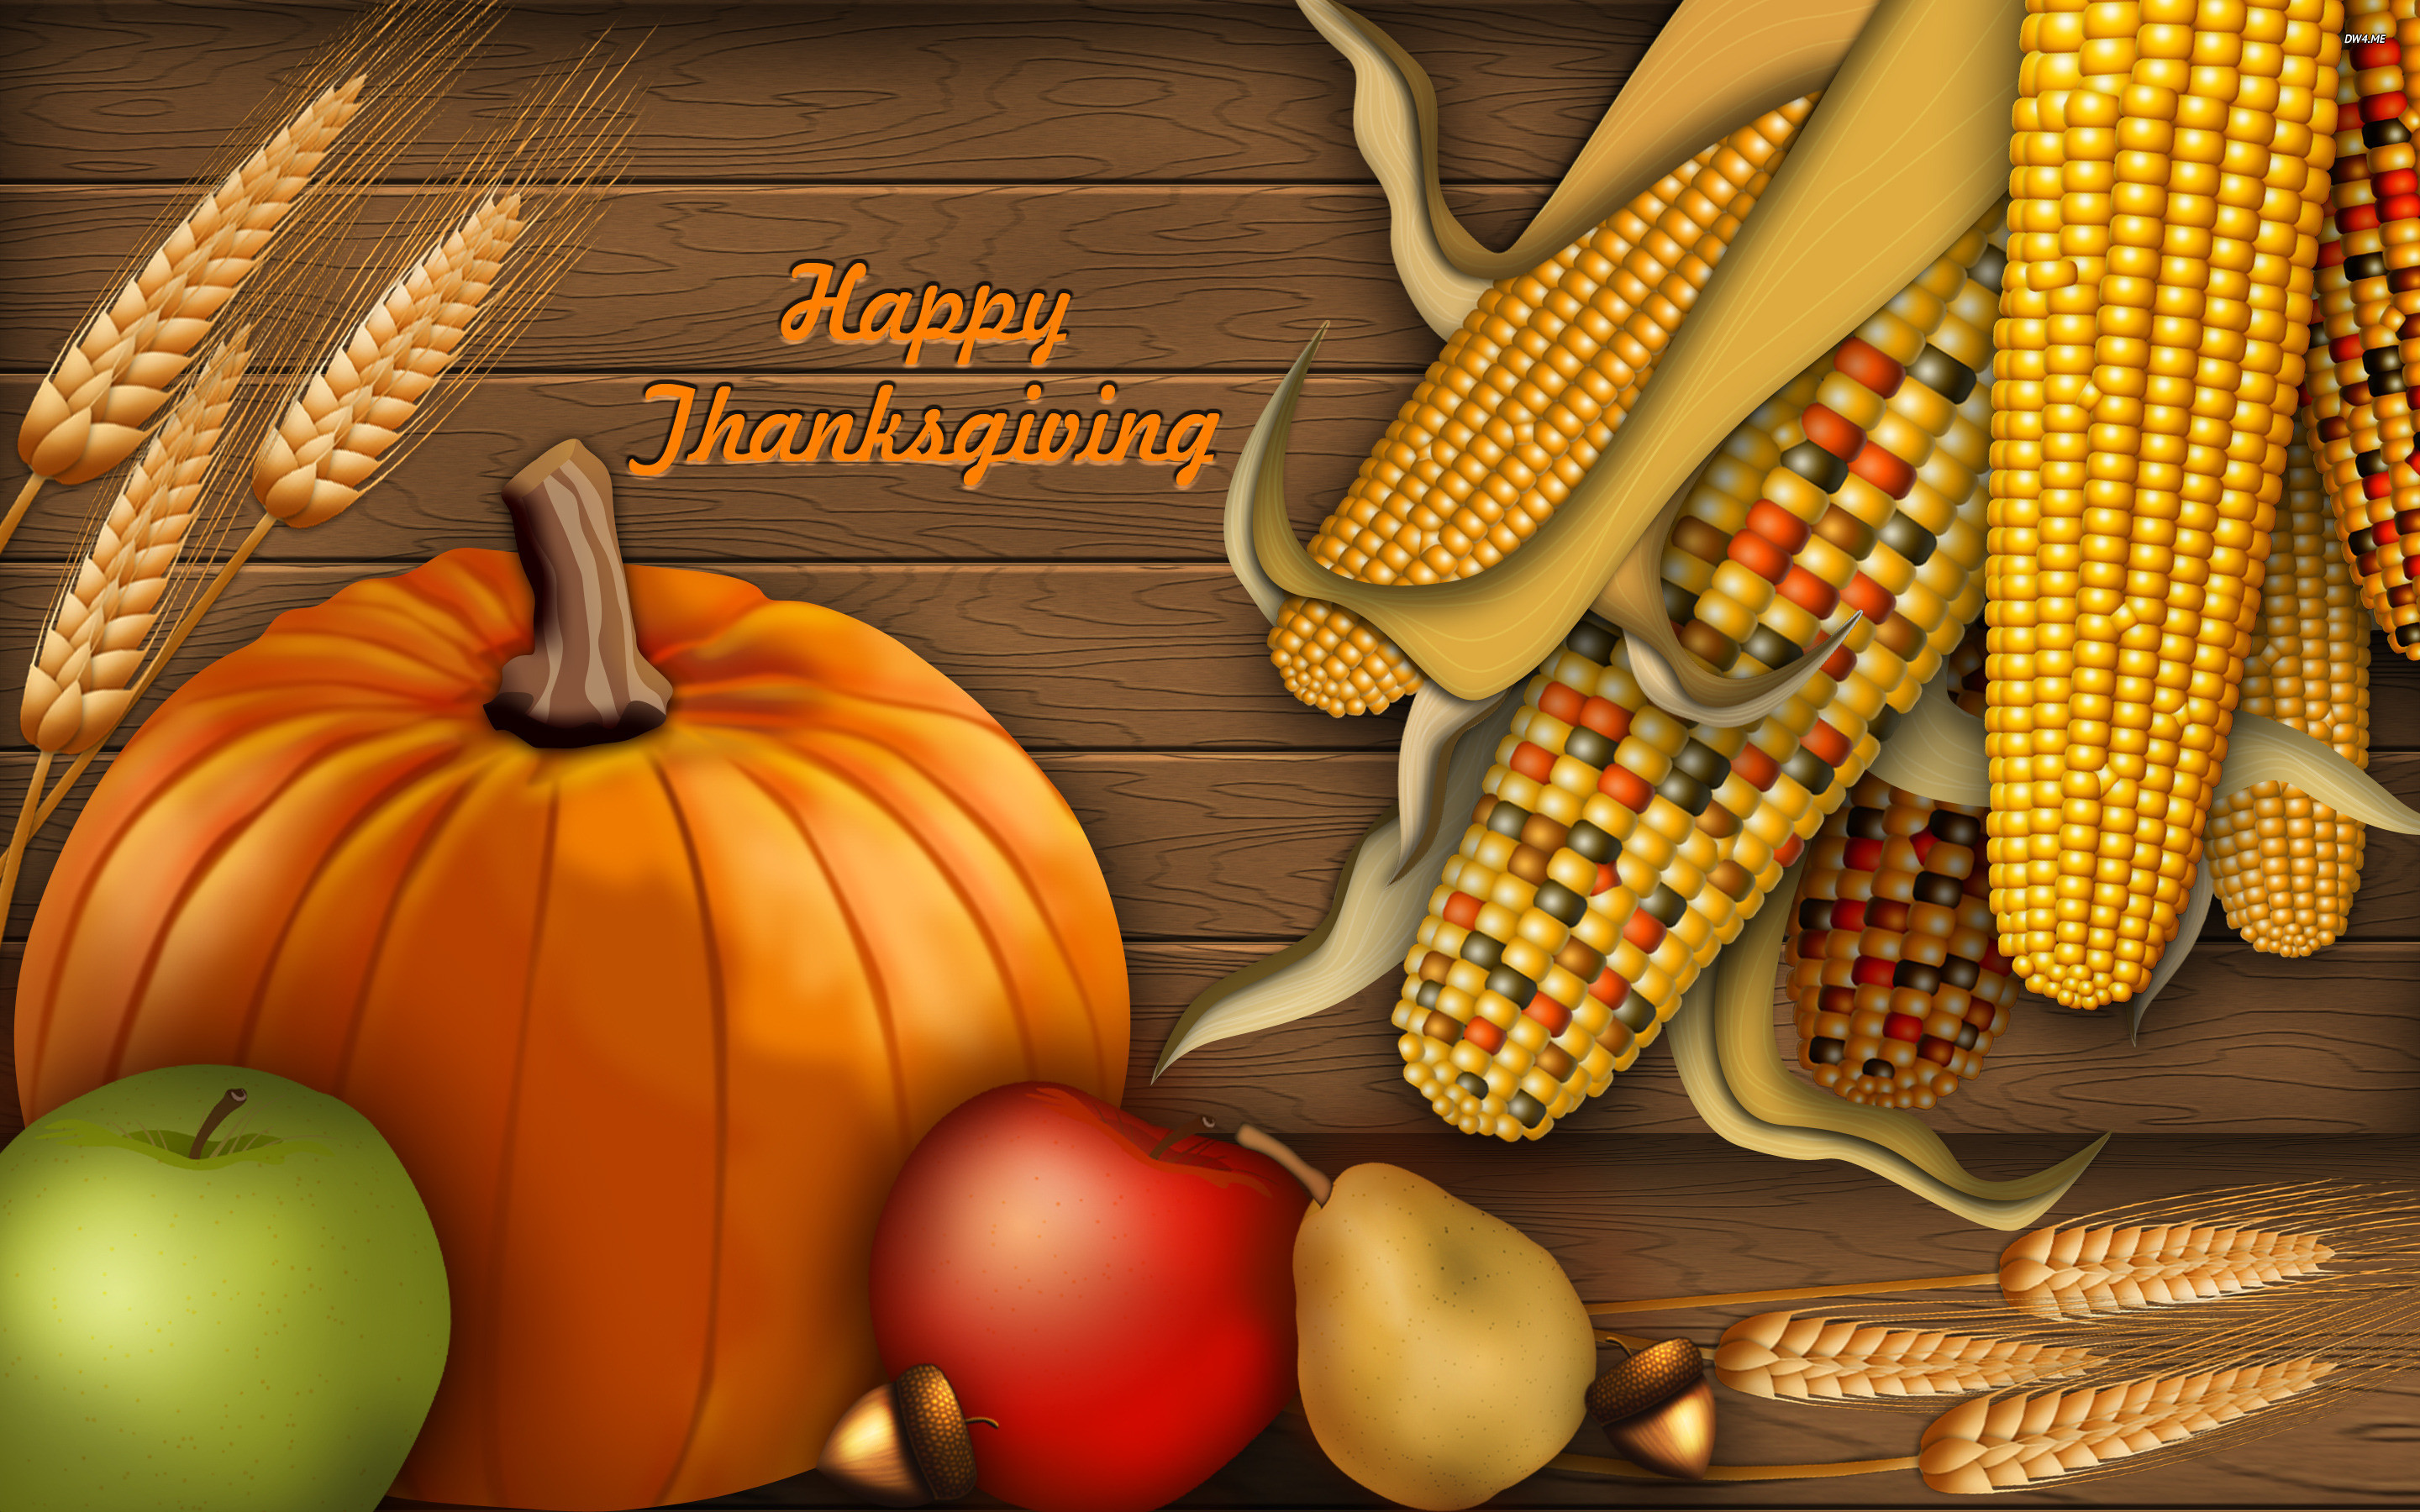 2880x1800 Thanksgiving Wallpaper HD - Wallpapers Browse